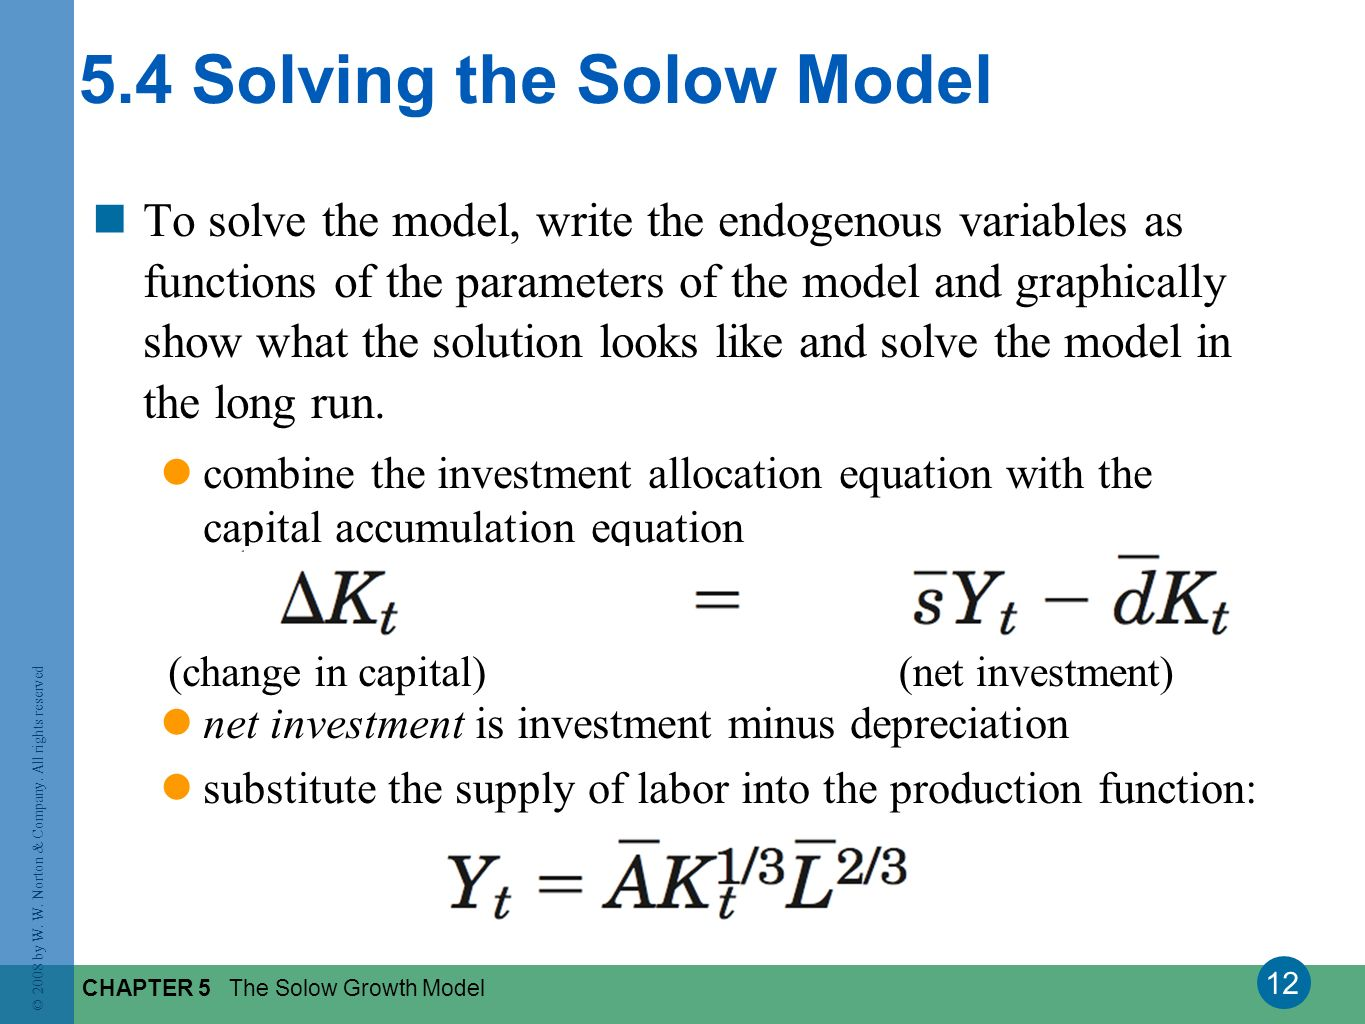 5.4 Solving the Solow Model